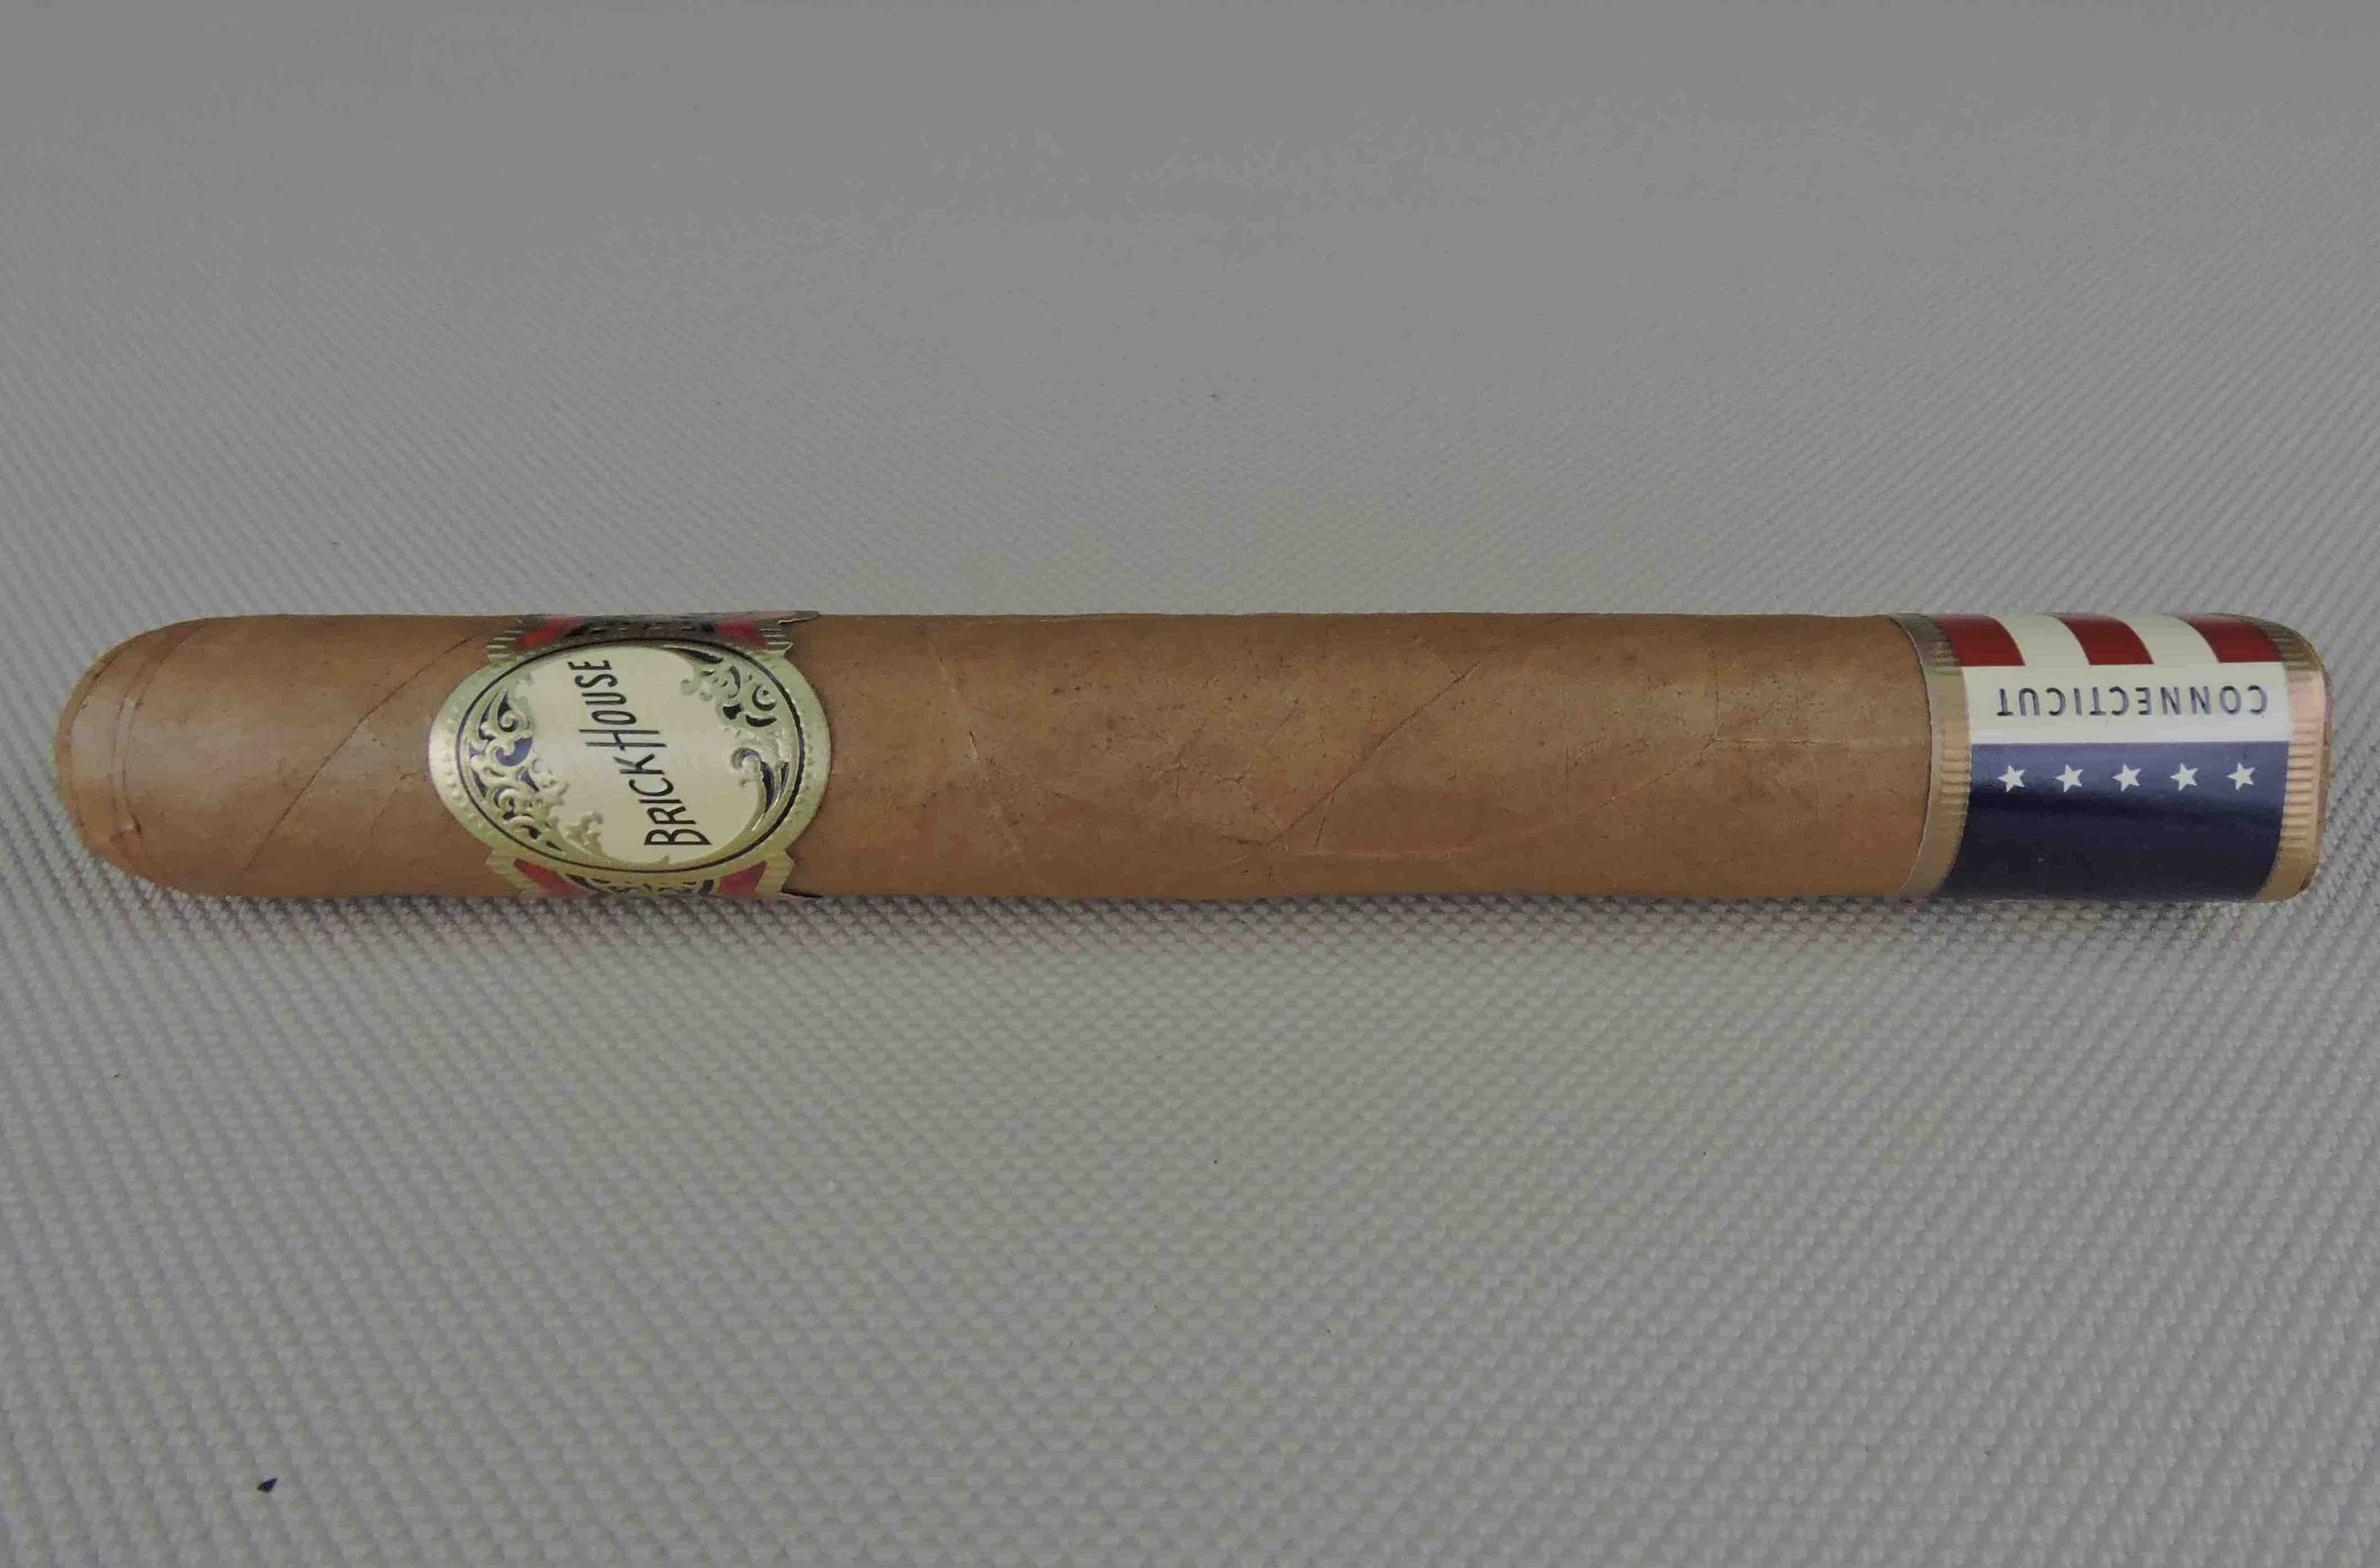 Cigar Review: Brick House Double Connecticut Toro by J.C. Newman Cigar Company